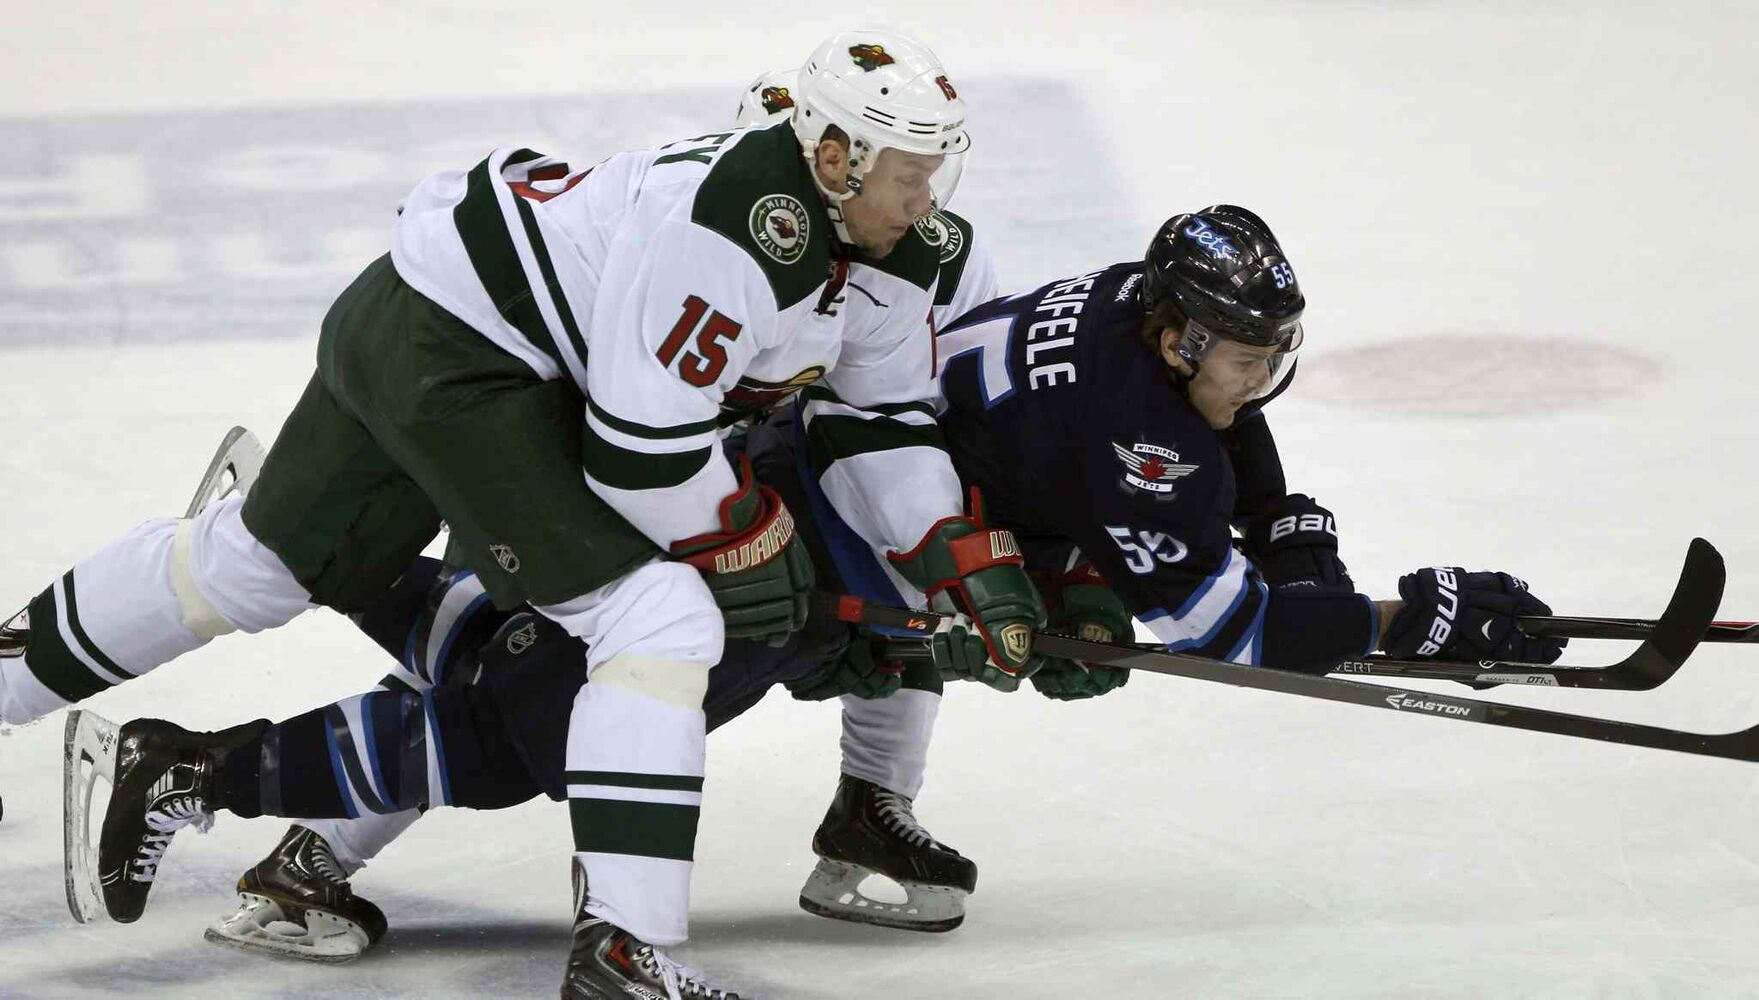 Winnipeg Jets forward Mark Scheifele (centre) gets hauled down by  Minnesota Wild skaters Dany Heatley (left) and Mikael Granlund during the first period. (JOE BRYKSA / WINNIPEG FREE PRESS)